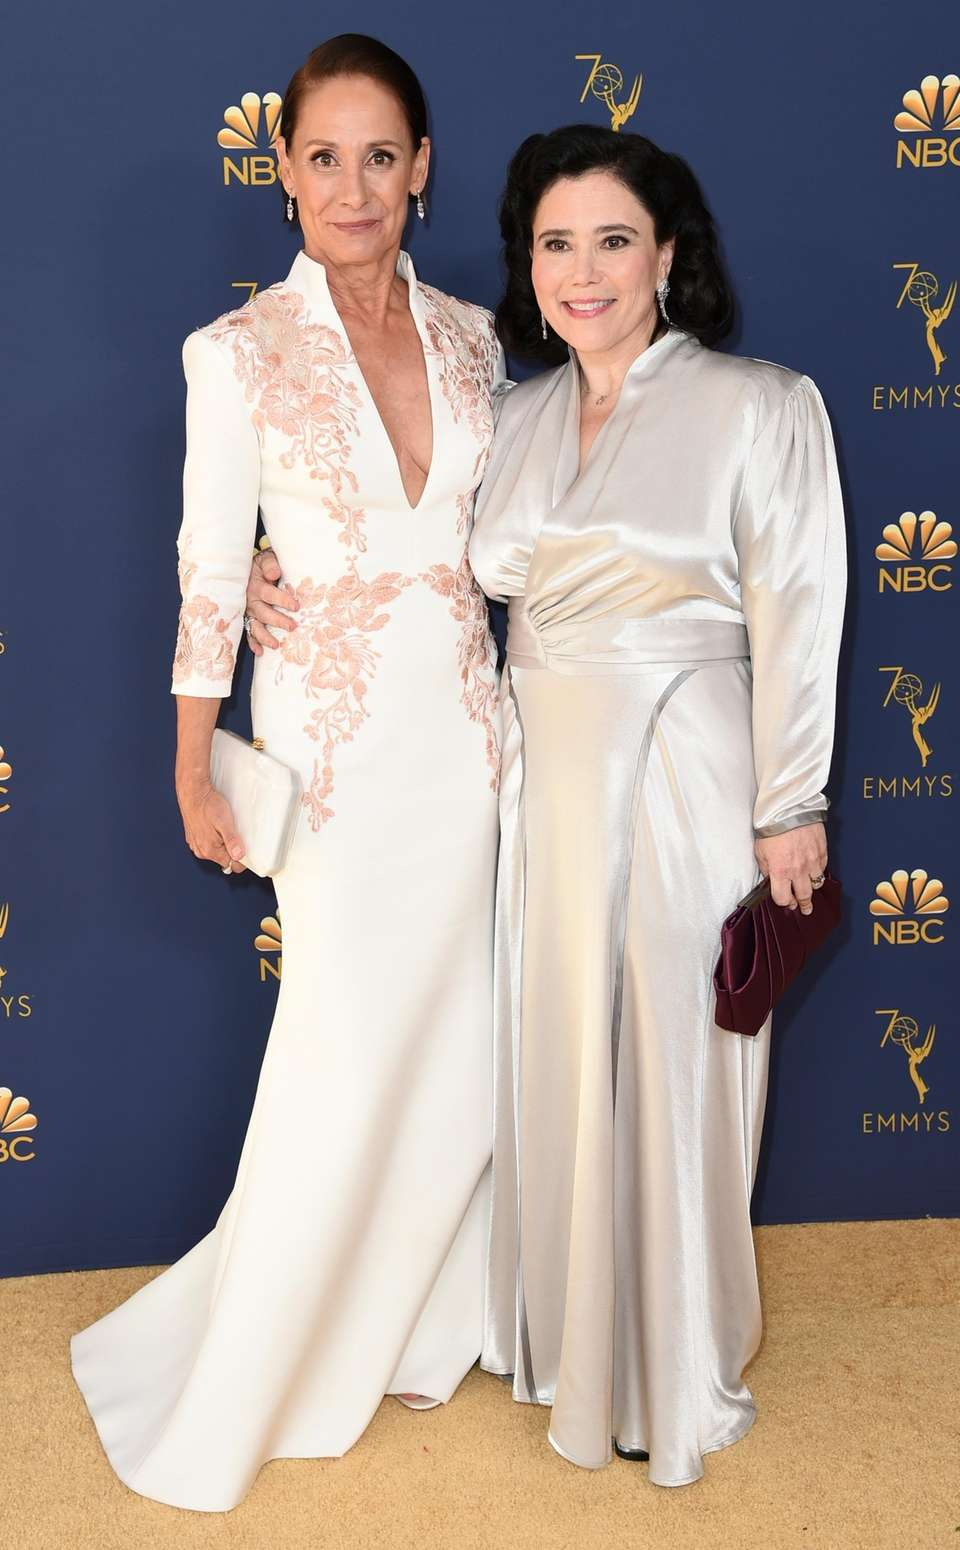 Laurie Metcalf, left, and Alex Borstein arrive for